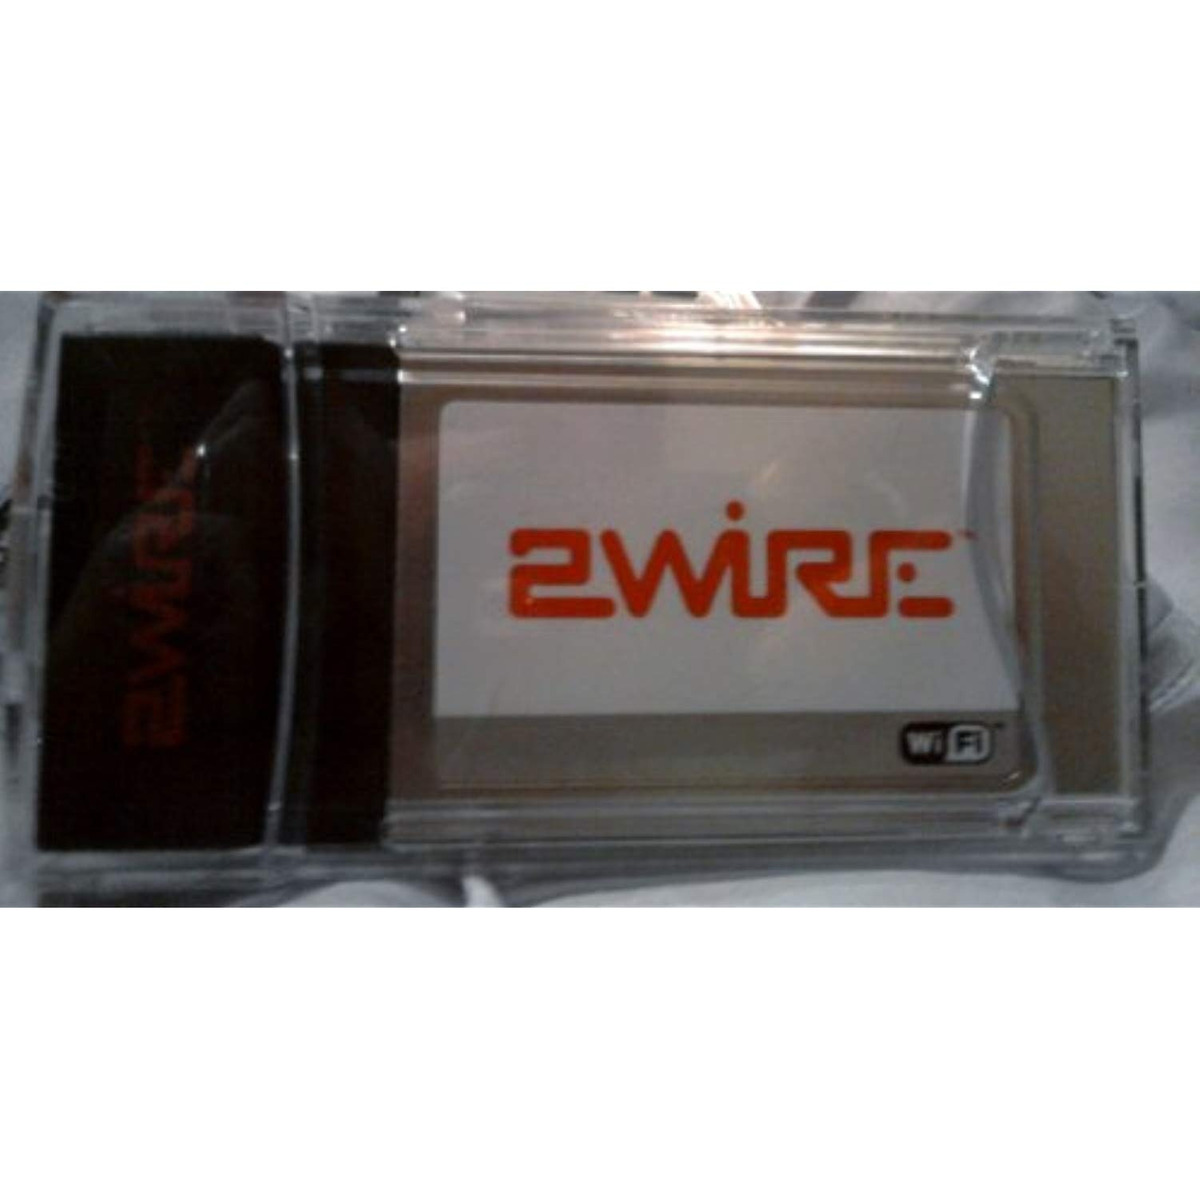 2WIRE WIRELESS PC CARD DOWNLOAD DRIVER